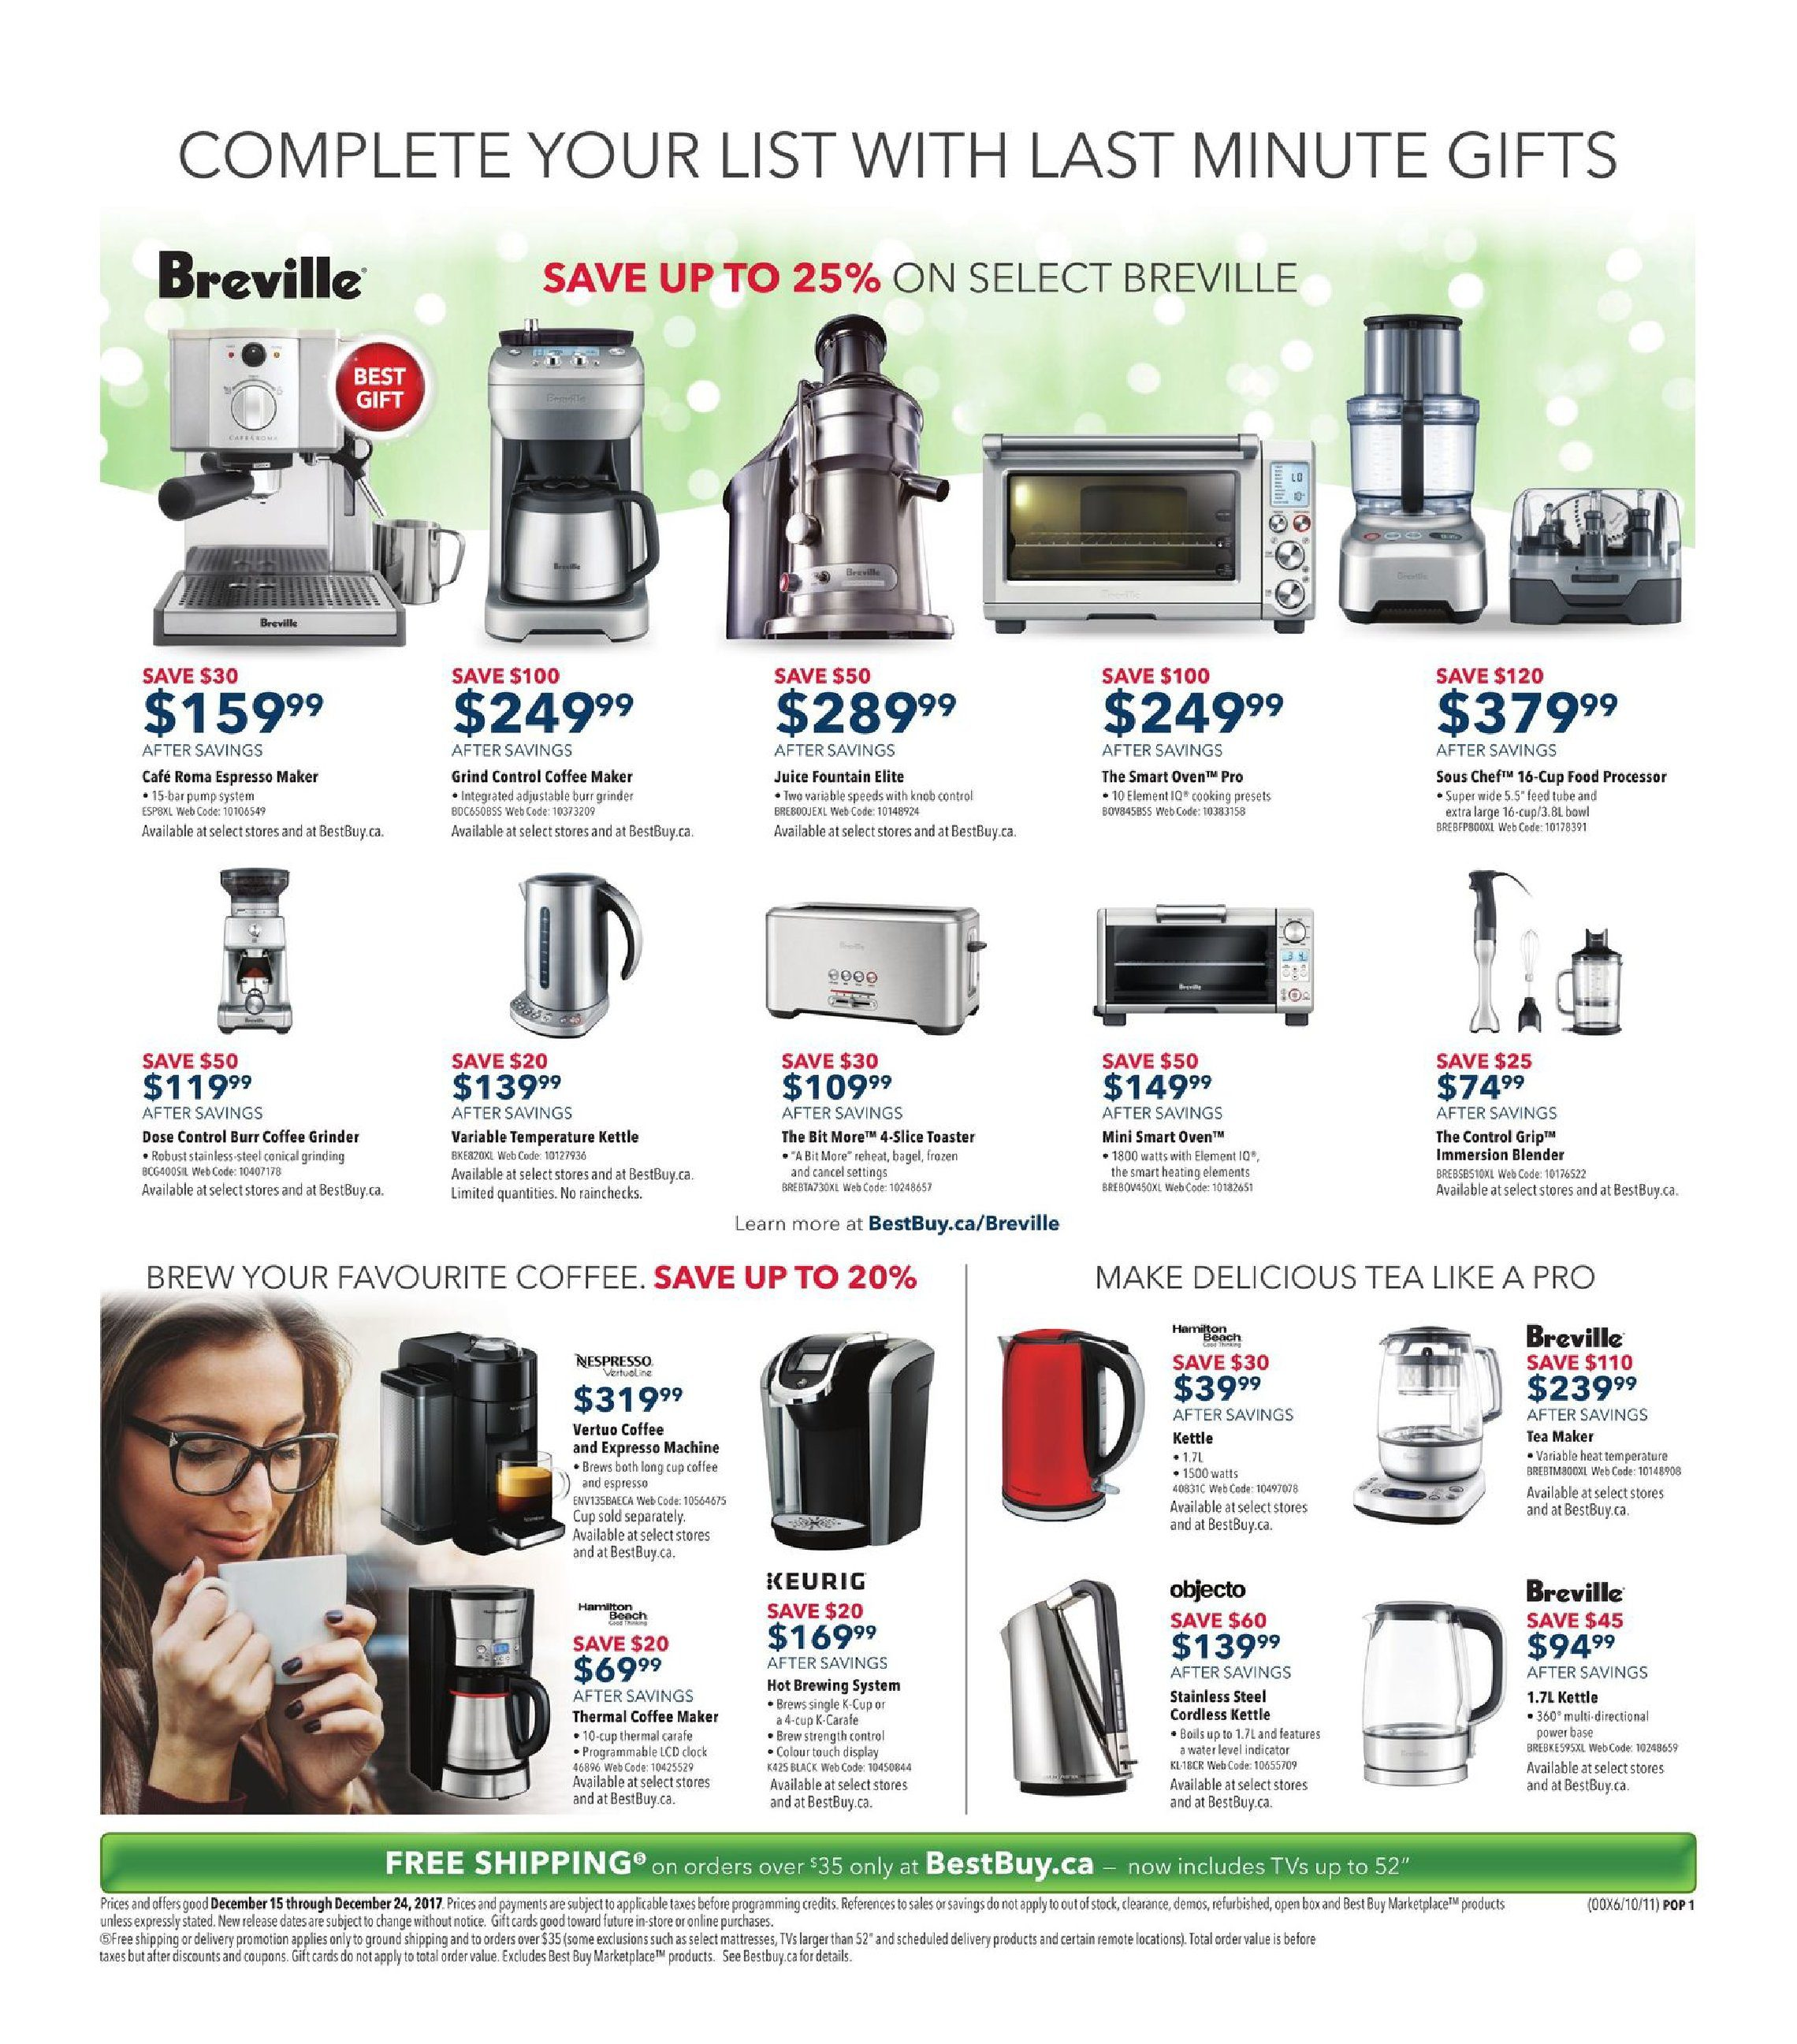 Best buy weekly flyer weekly boxing day prices now dec 15 24 best buy weekly flyer weekly boxing day prices now dec 15 24 redflagdeals fandeluxe Image collections